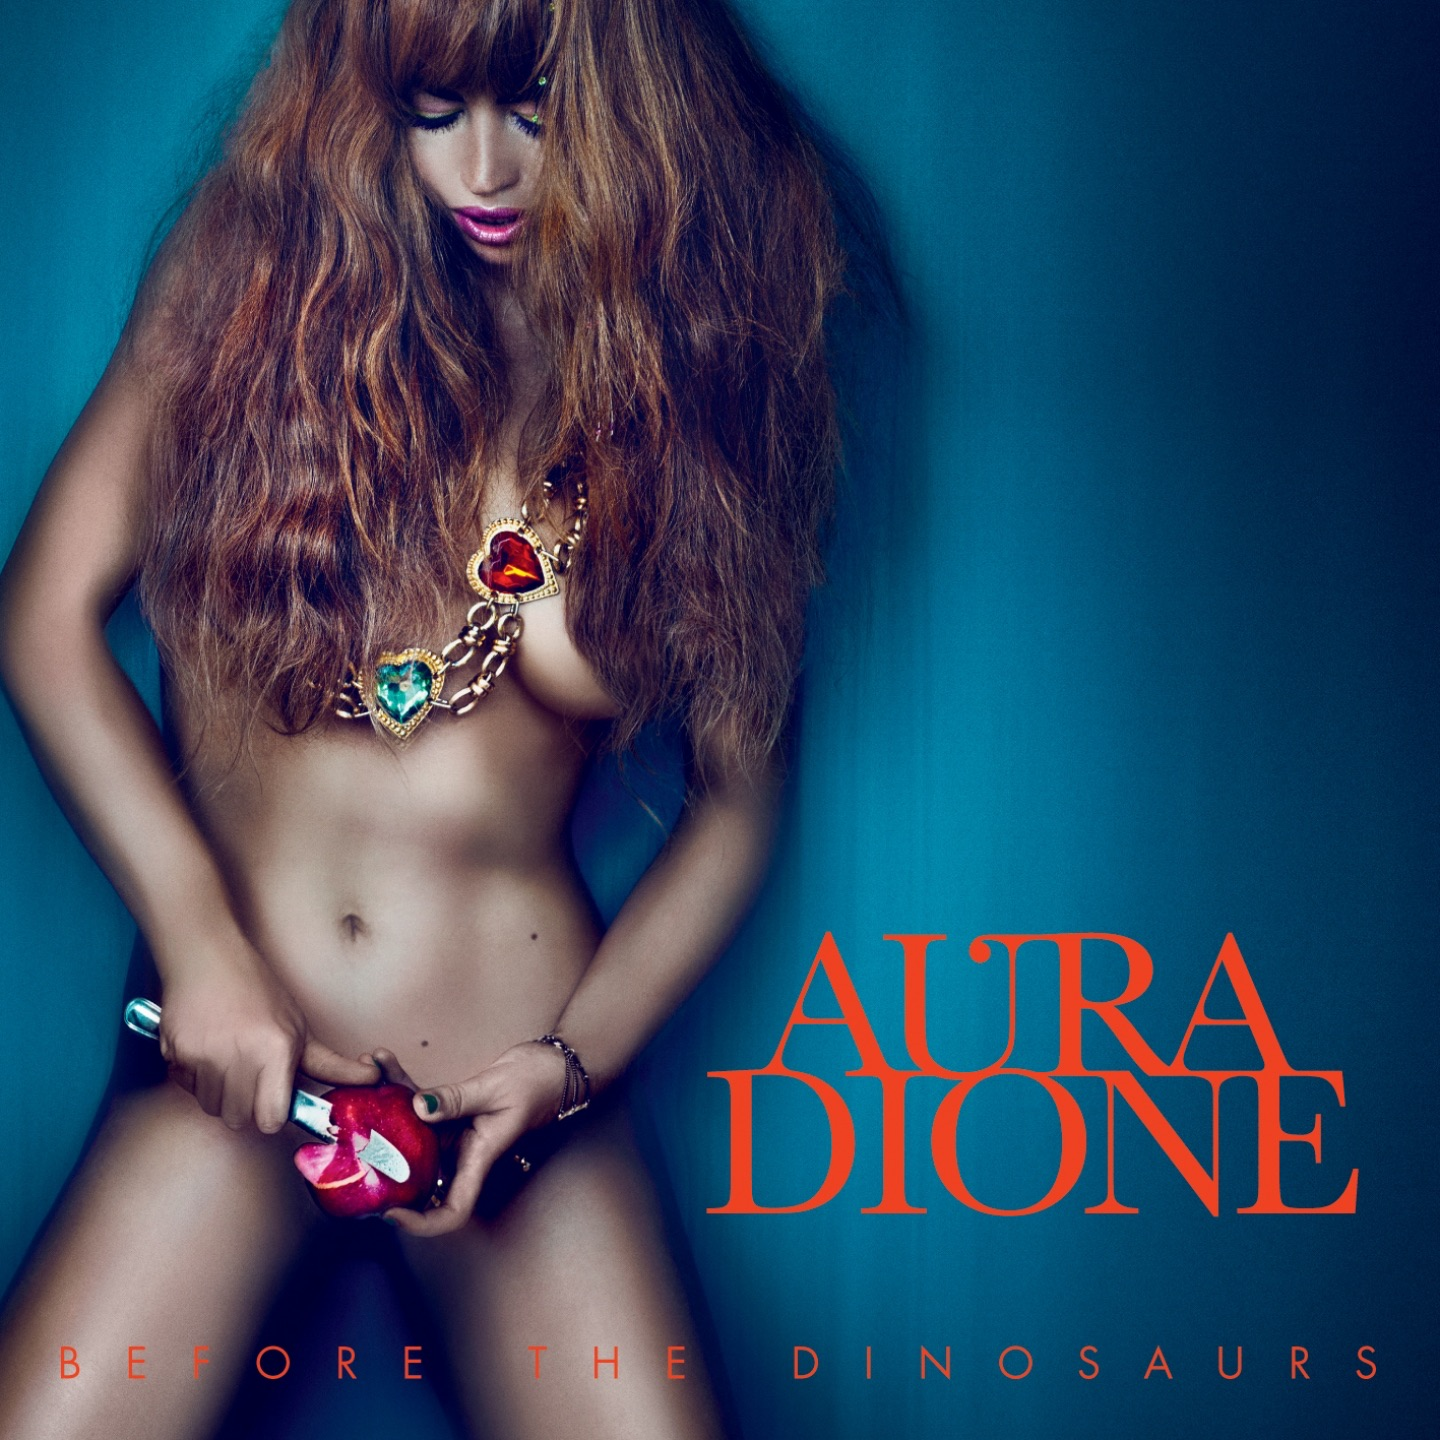 Aura Dione album Before The Dinosaurs